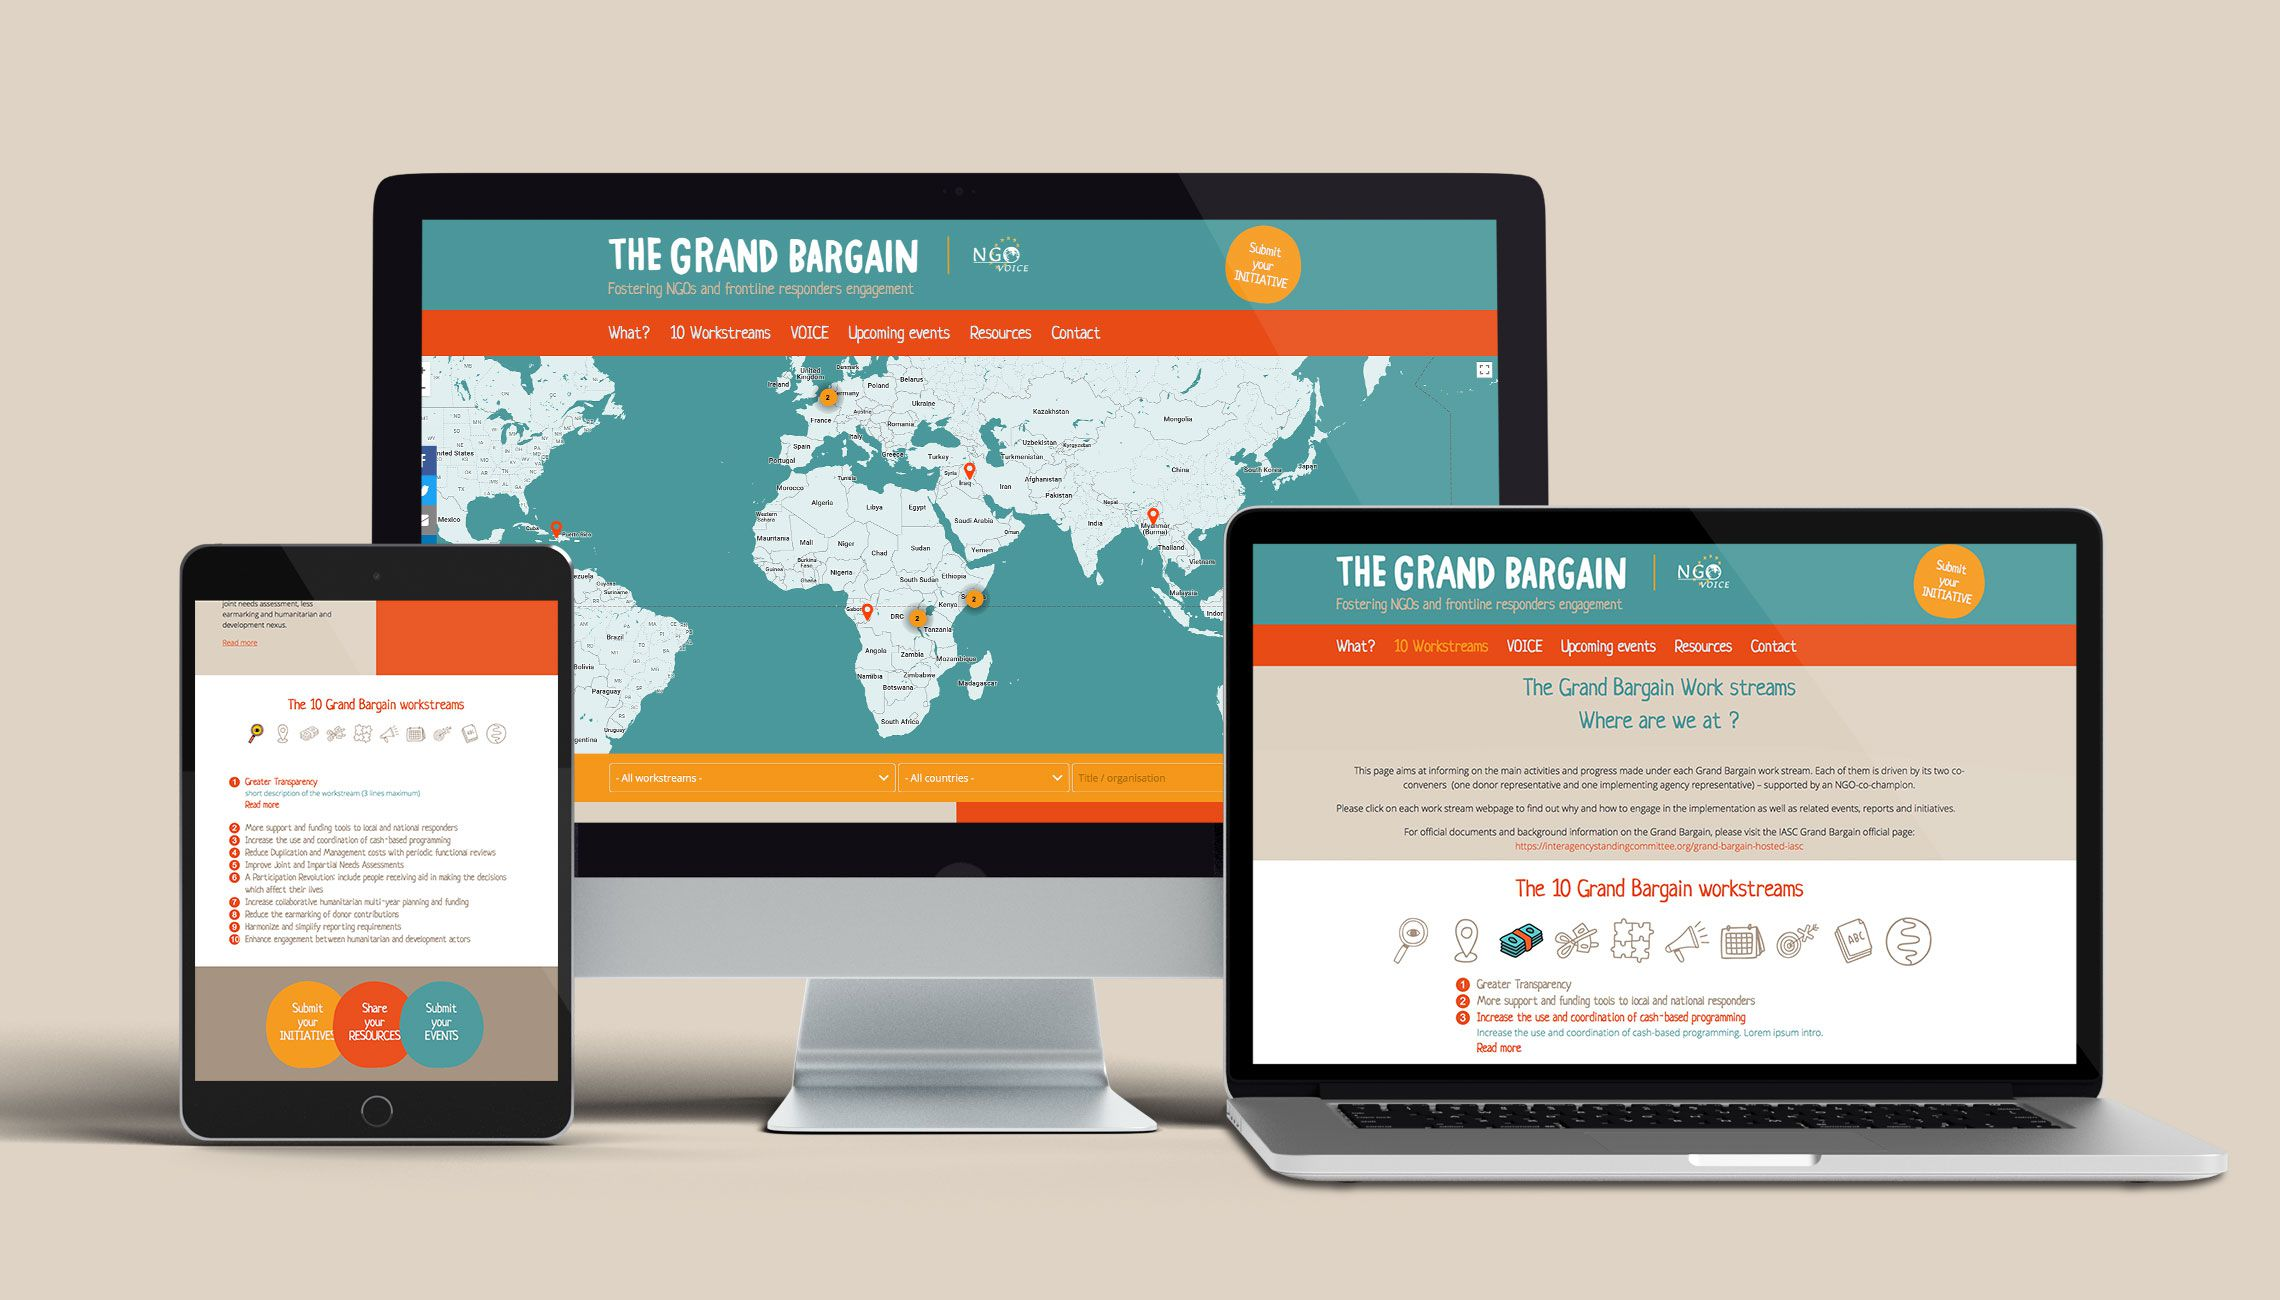 web: Design of the 'Grand Bargain' website  - image 1